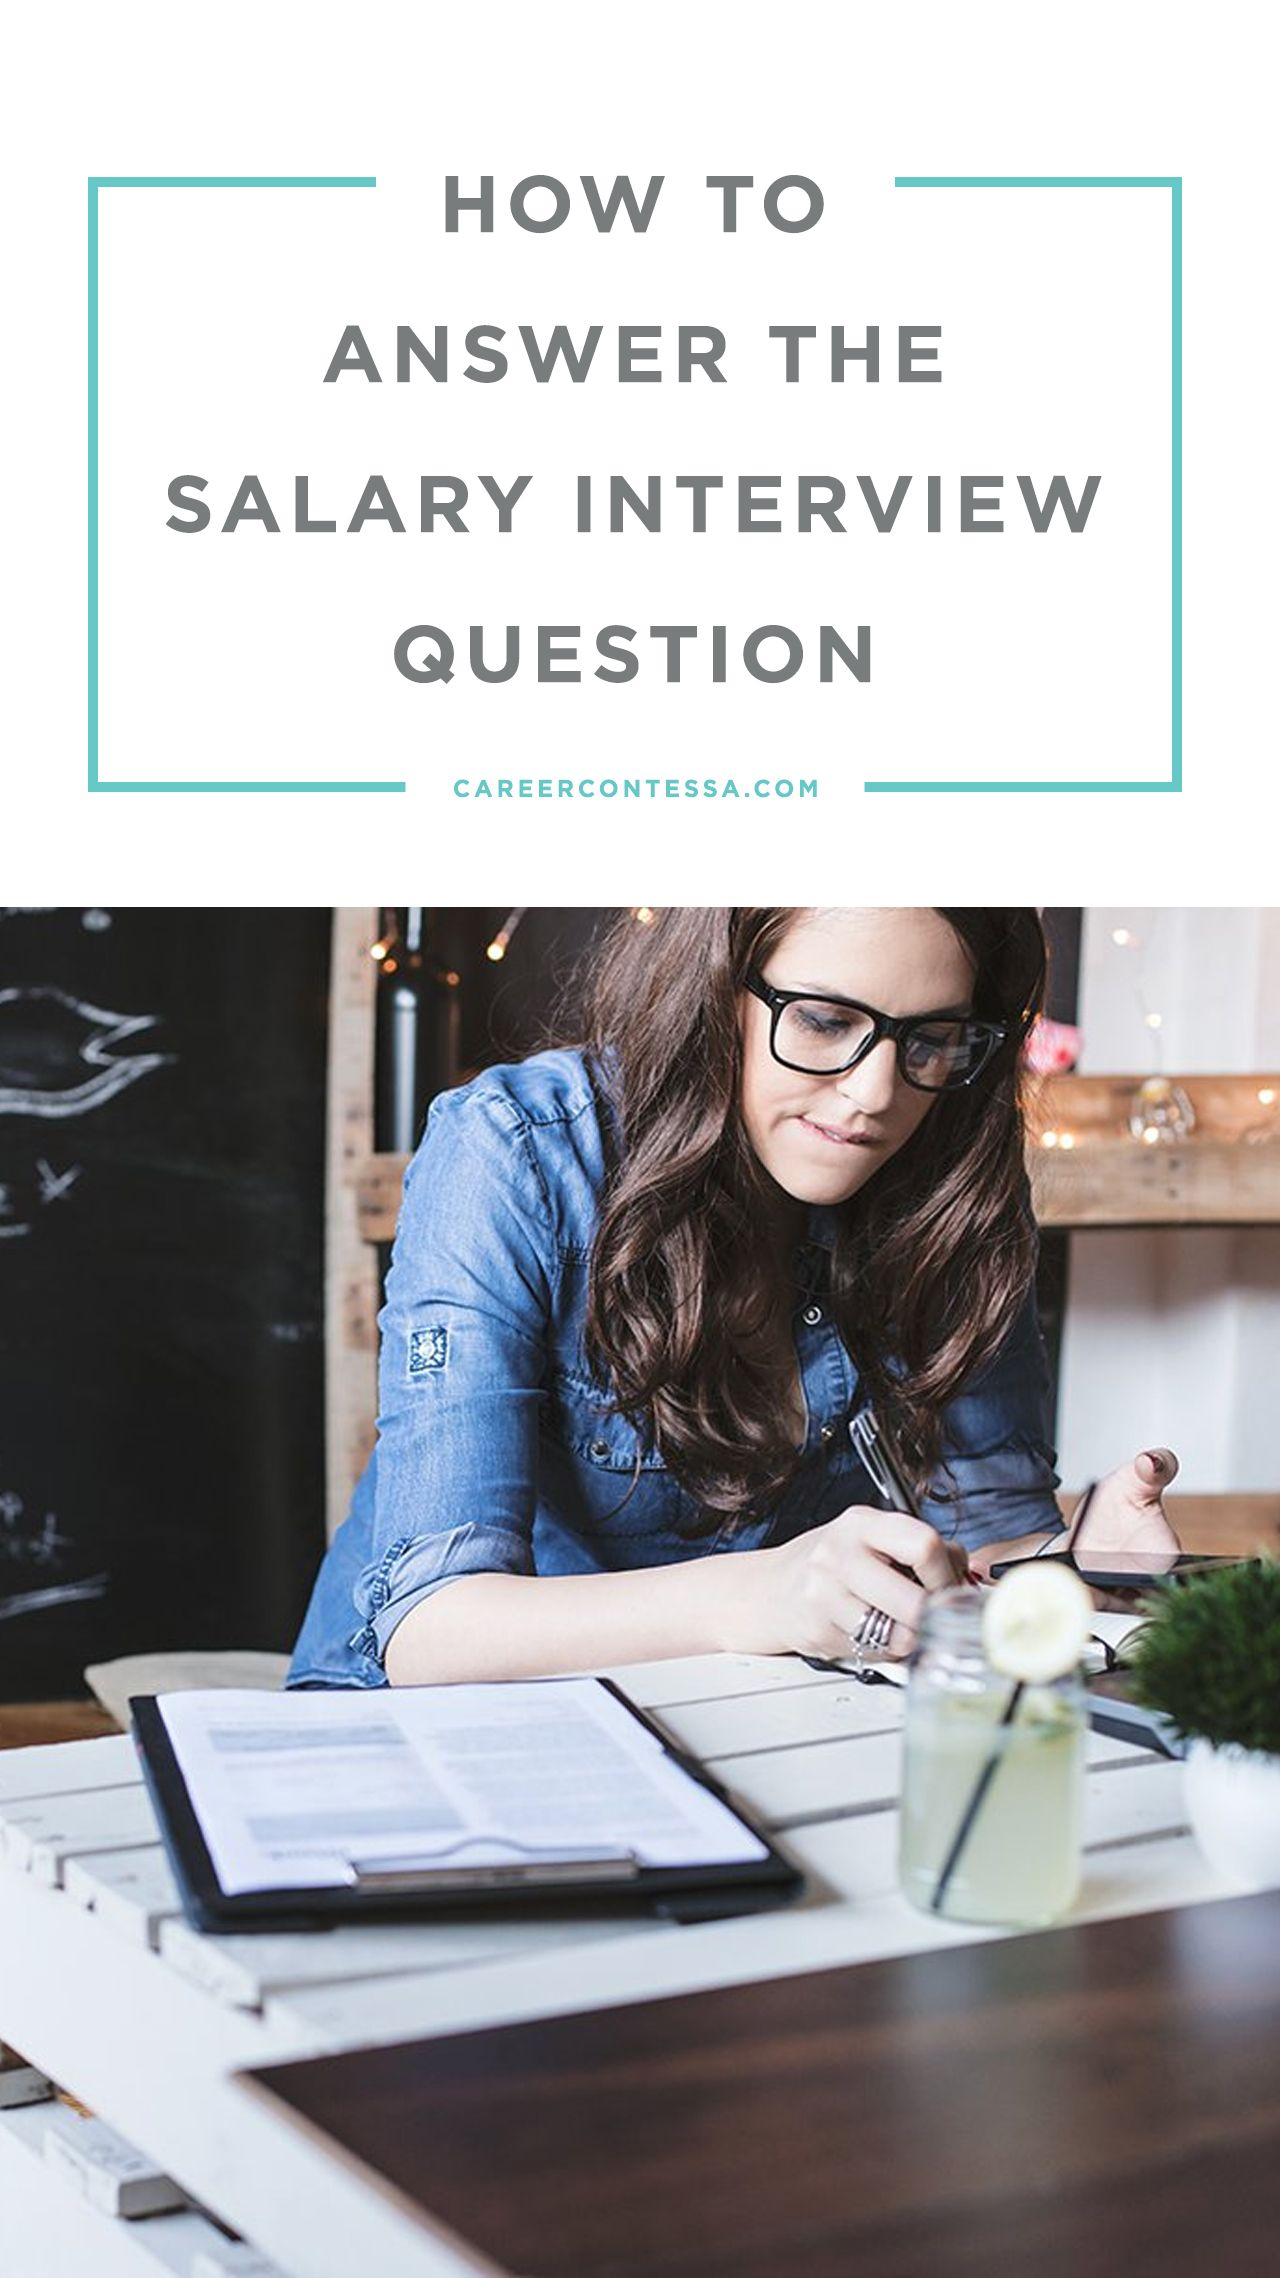 how to negotiate your salary before accepting a job offer the o job interviews are stressful here s how to come prepared to negotiate your salary requirements career advice for women best careers for women